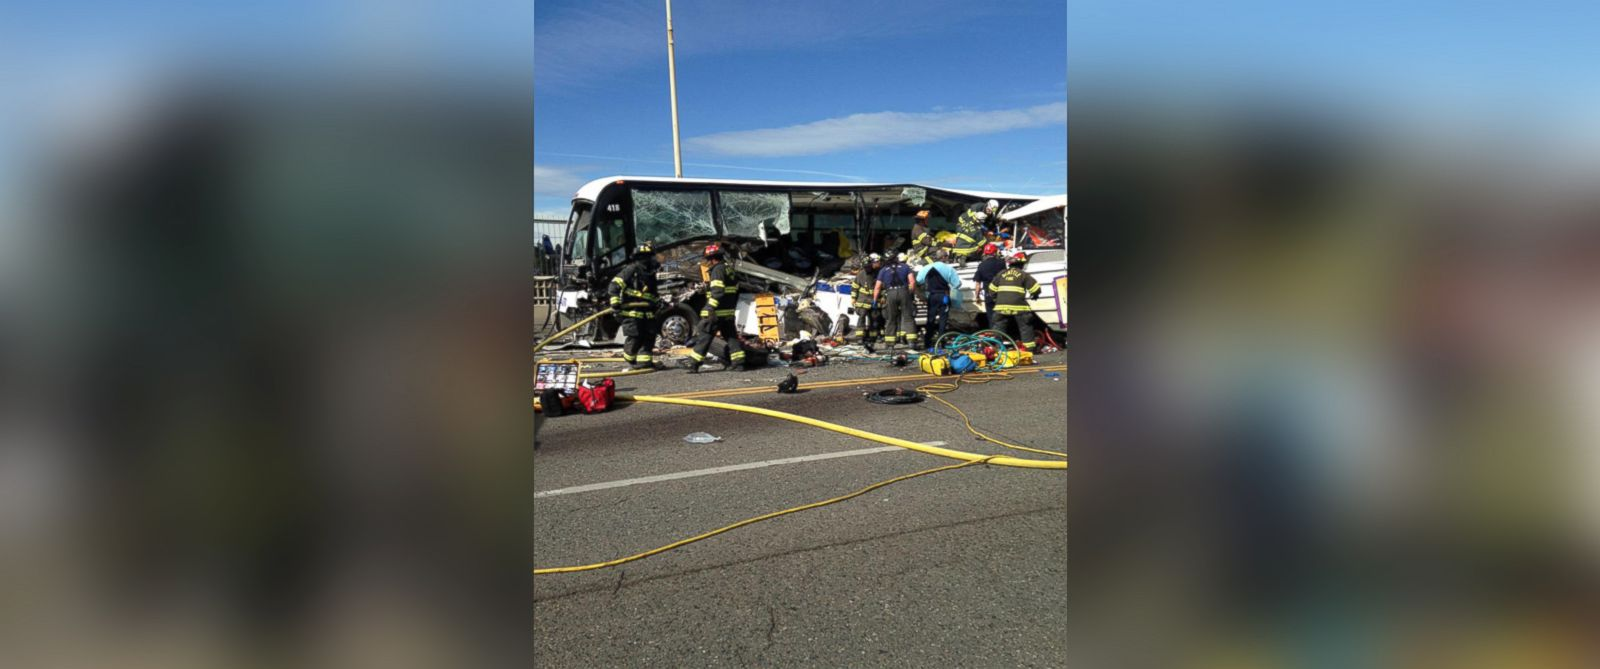 "PHOTO: An image released by the Seattle Fire Department showing the wreckage of the ""Ride the Ducks"" vehicle."